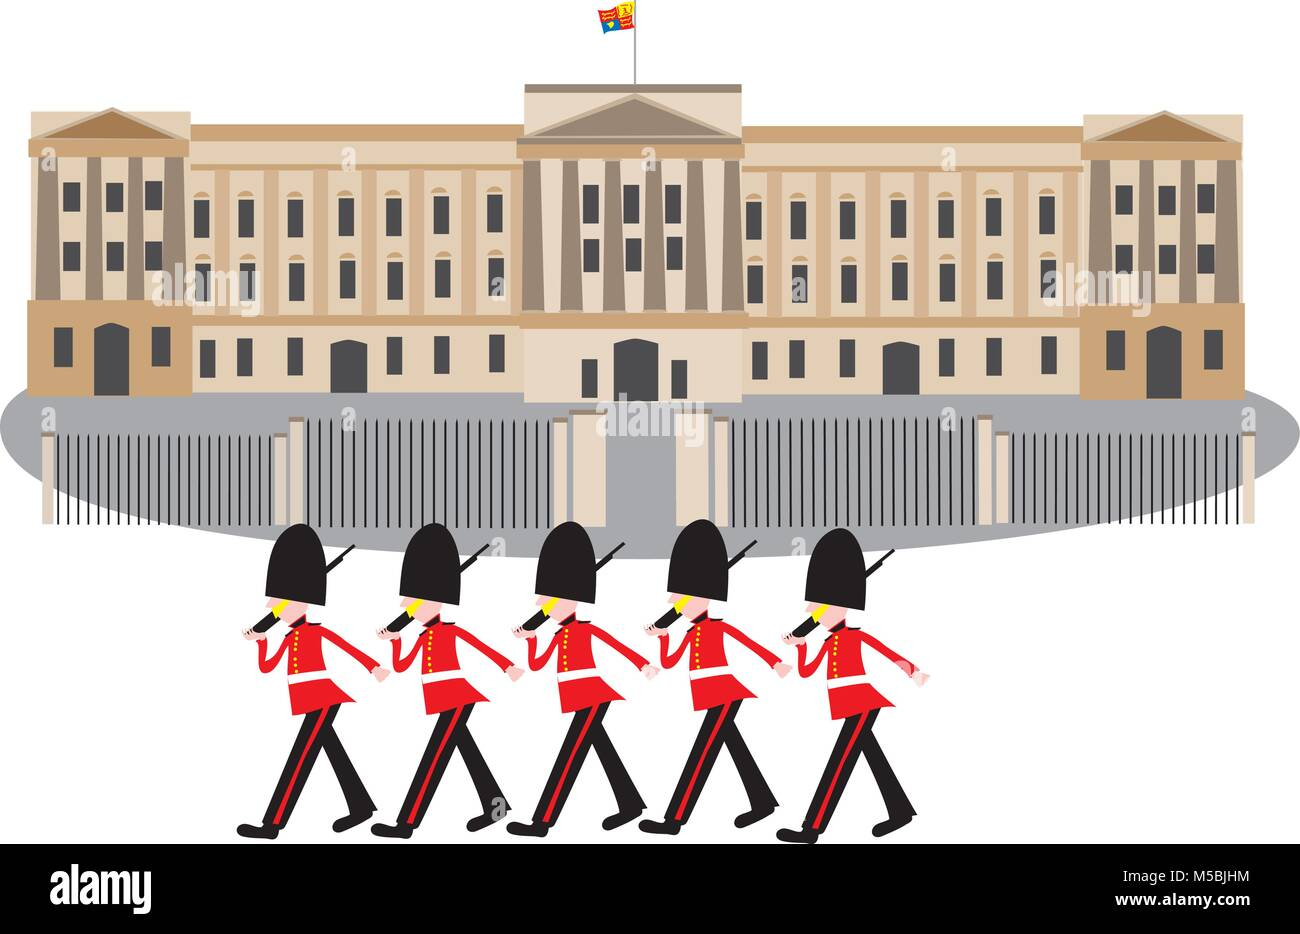 A cartoon Buckingham Palace with guards in bearskin hats marching in front of the gates - Stock Vector